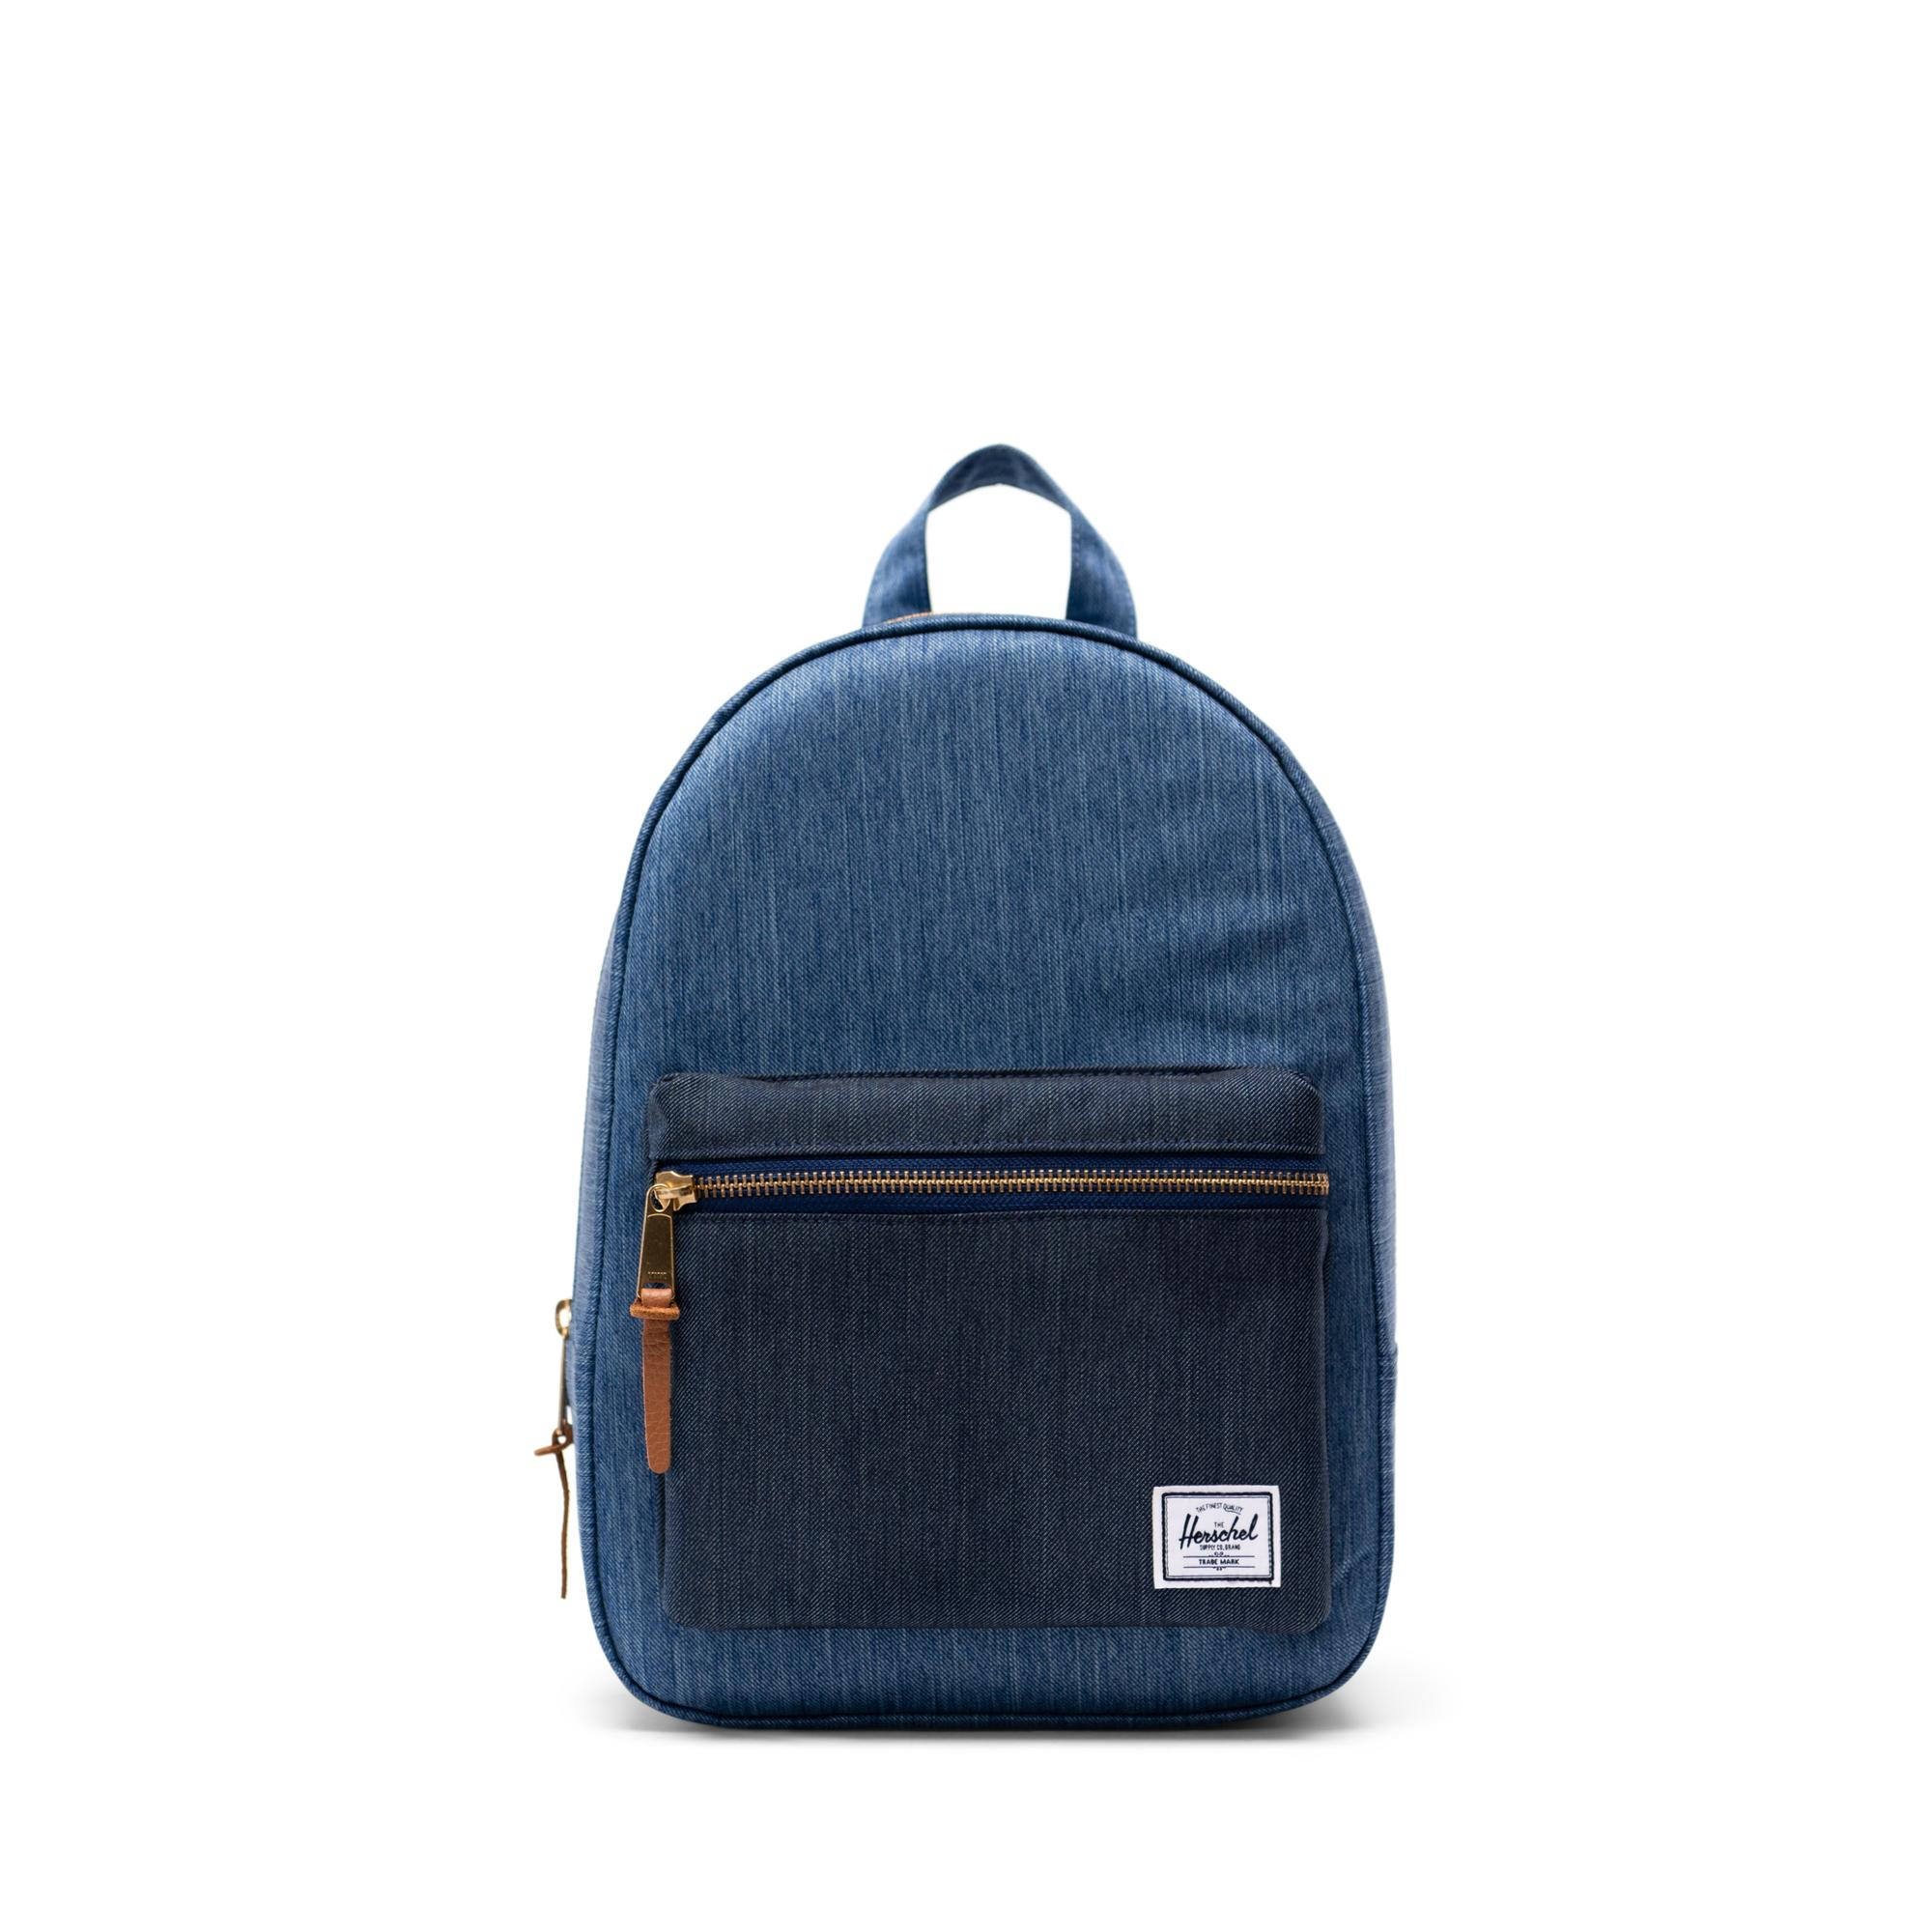 0891272a7 Grove Backpack Small | Herschel Supply Company